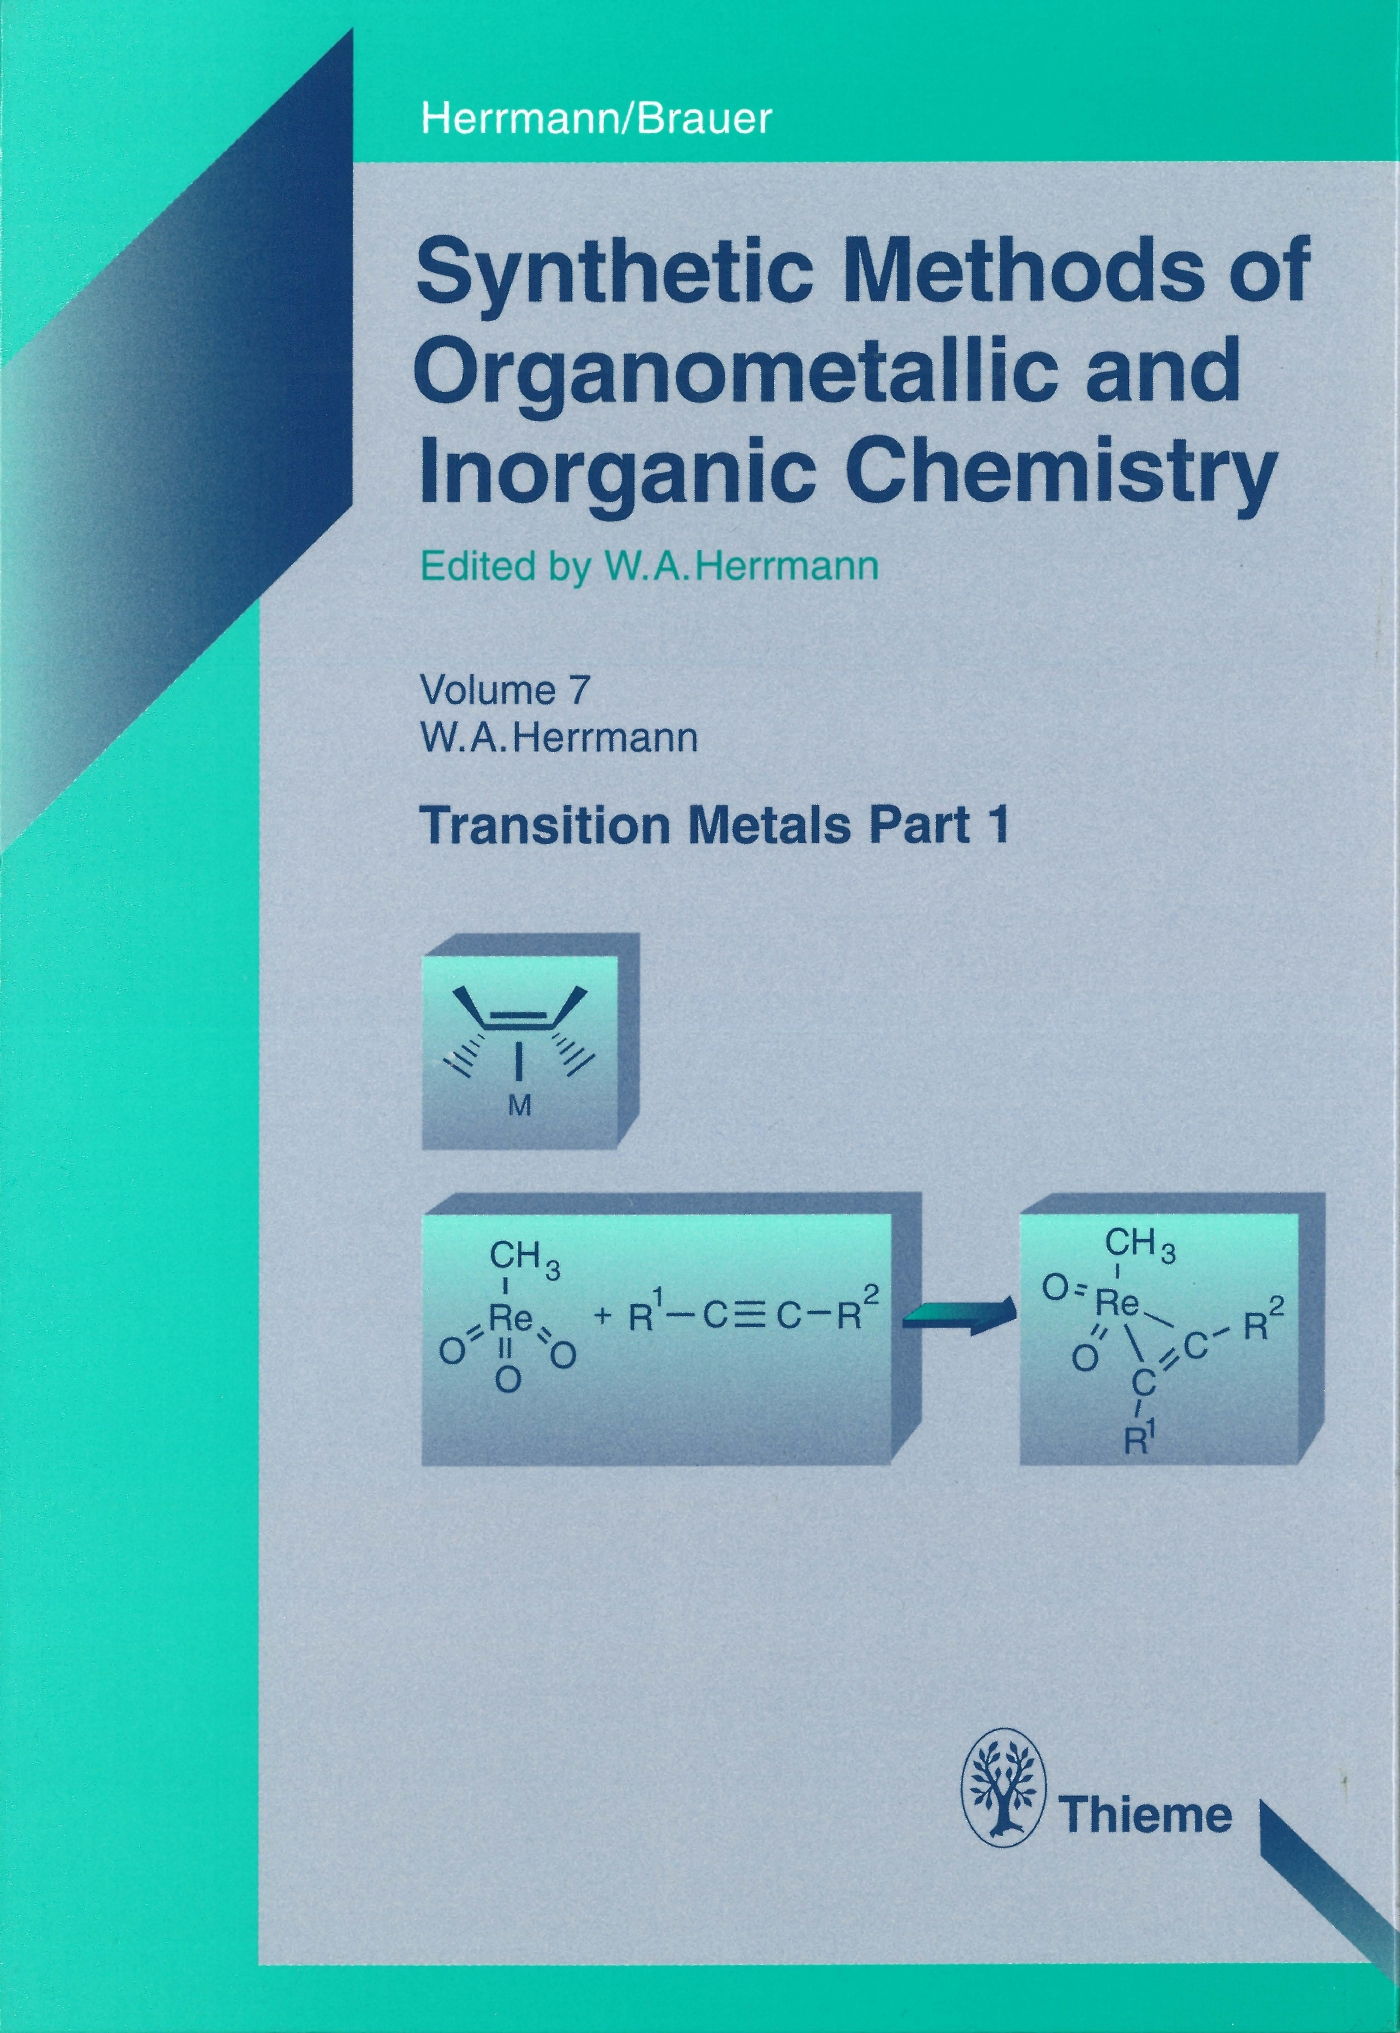 Synthetic Methods of Organometallic and Inorganic Chemistry, Volume 7, 1997